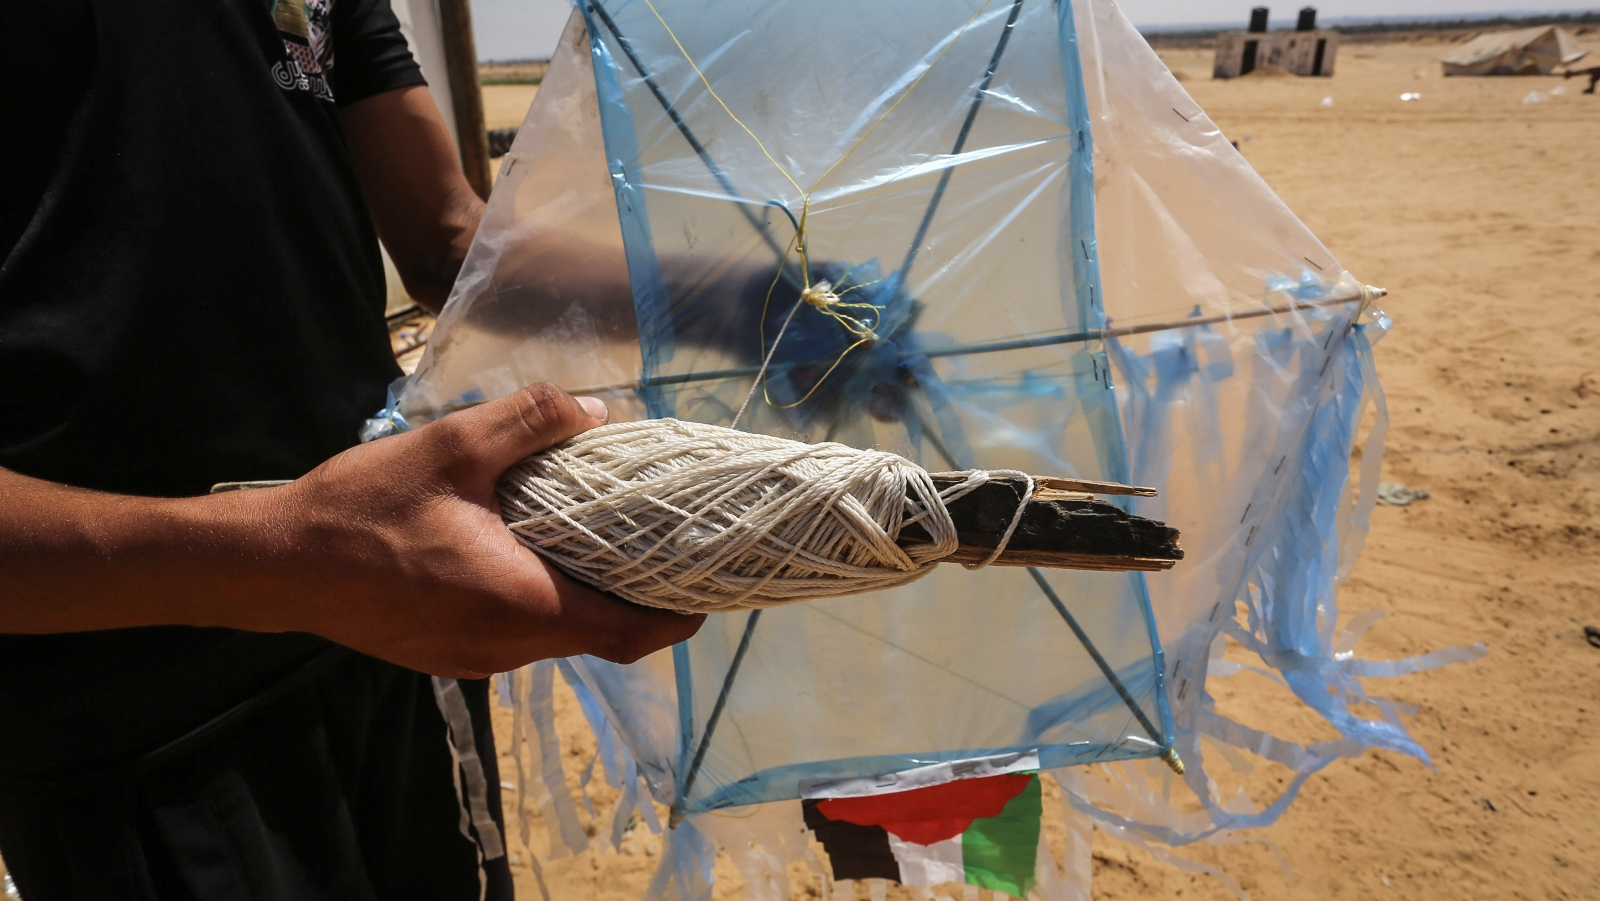 Could racing drones be the answer to the fire-kite threat?